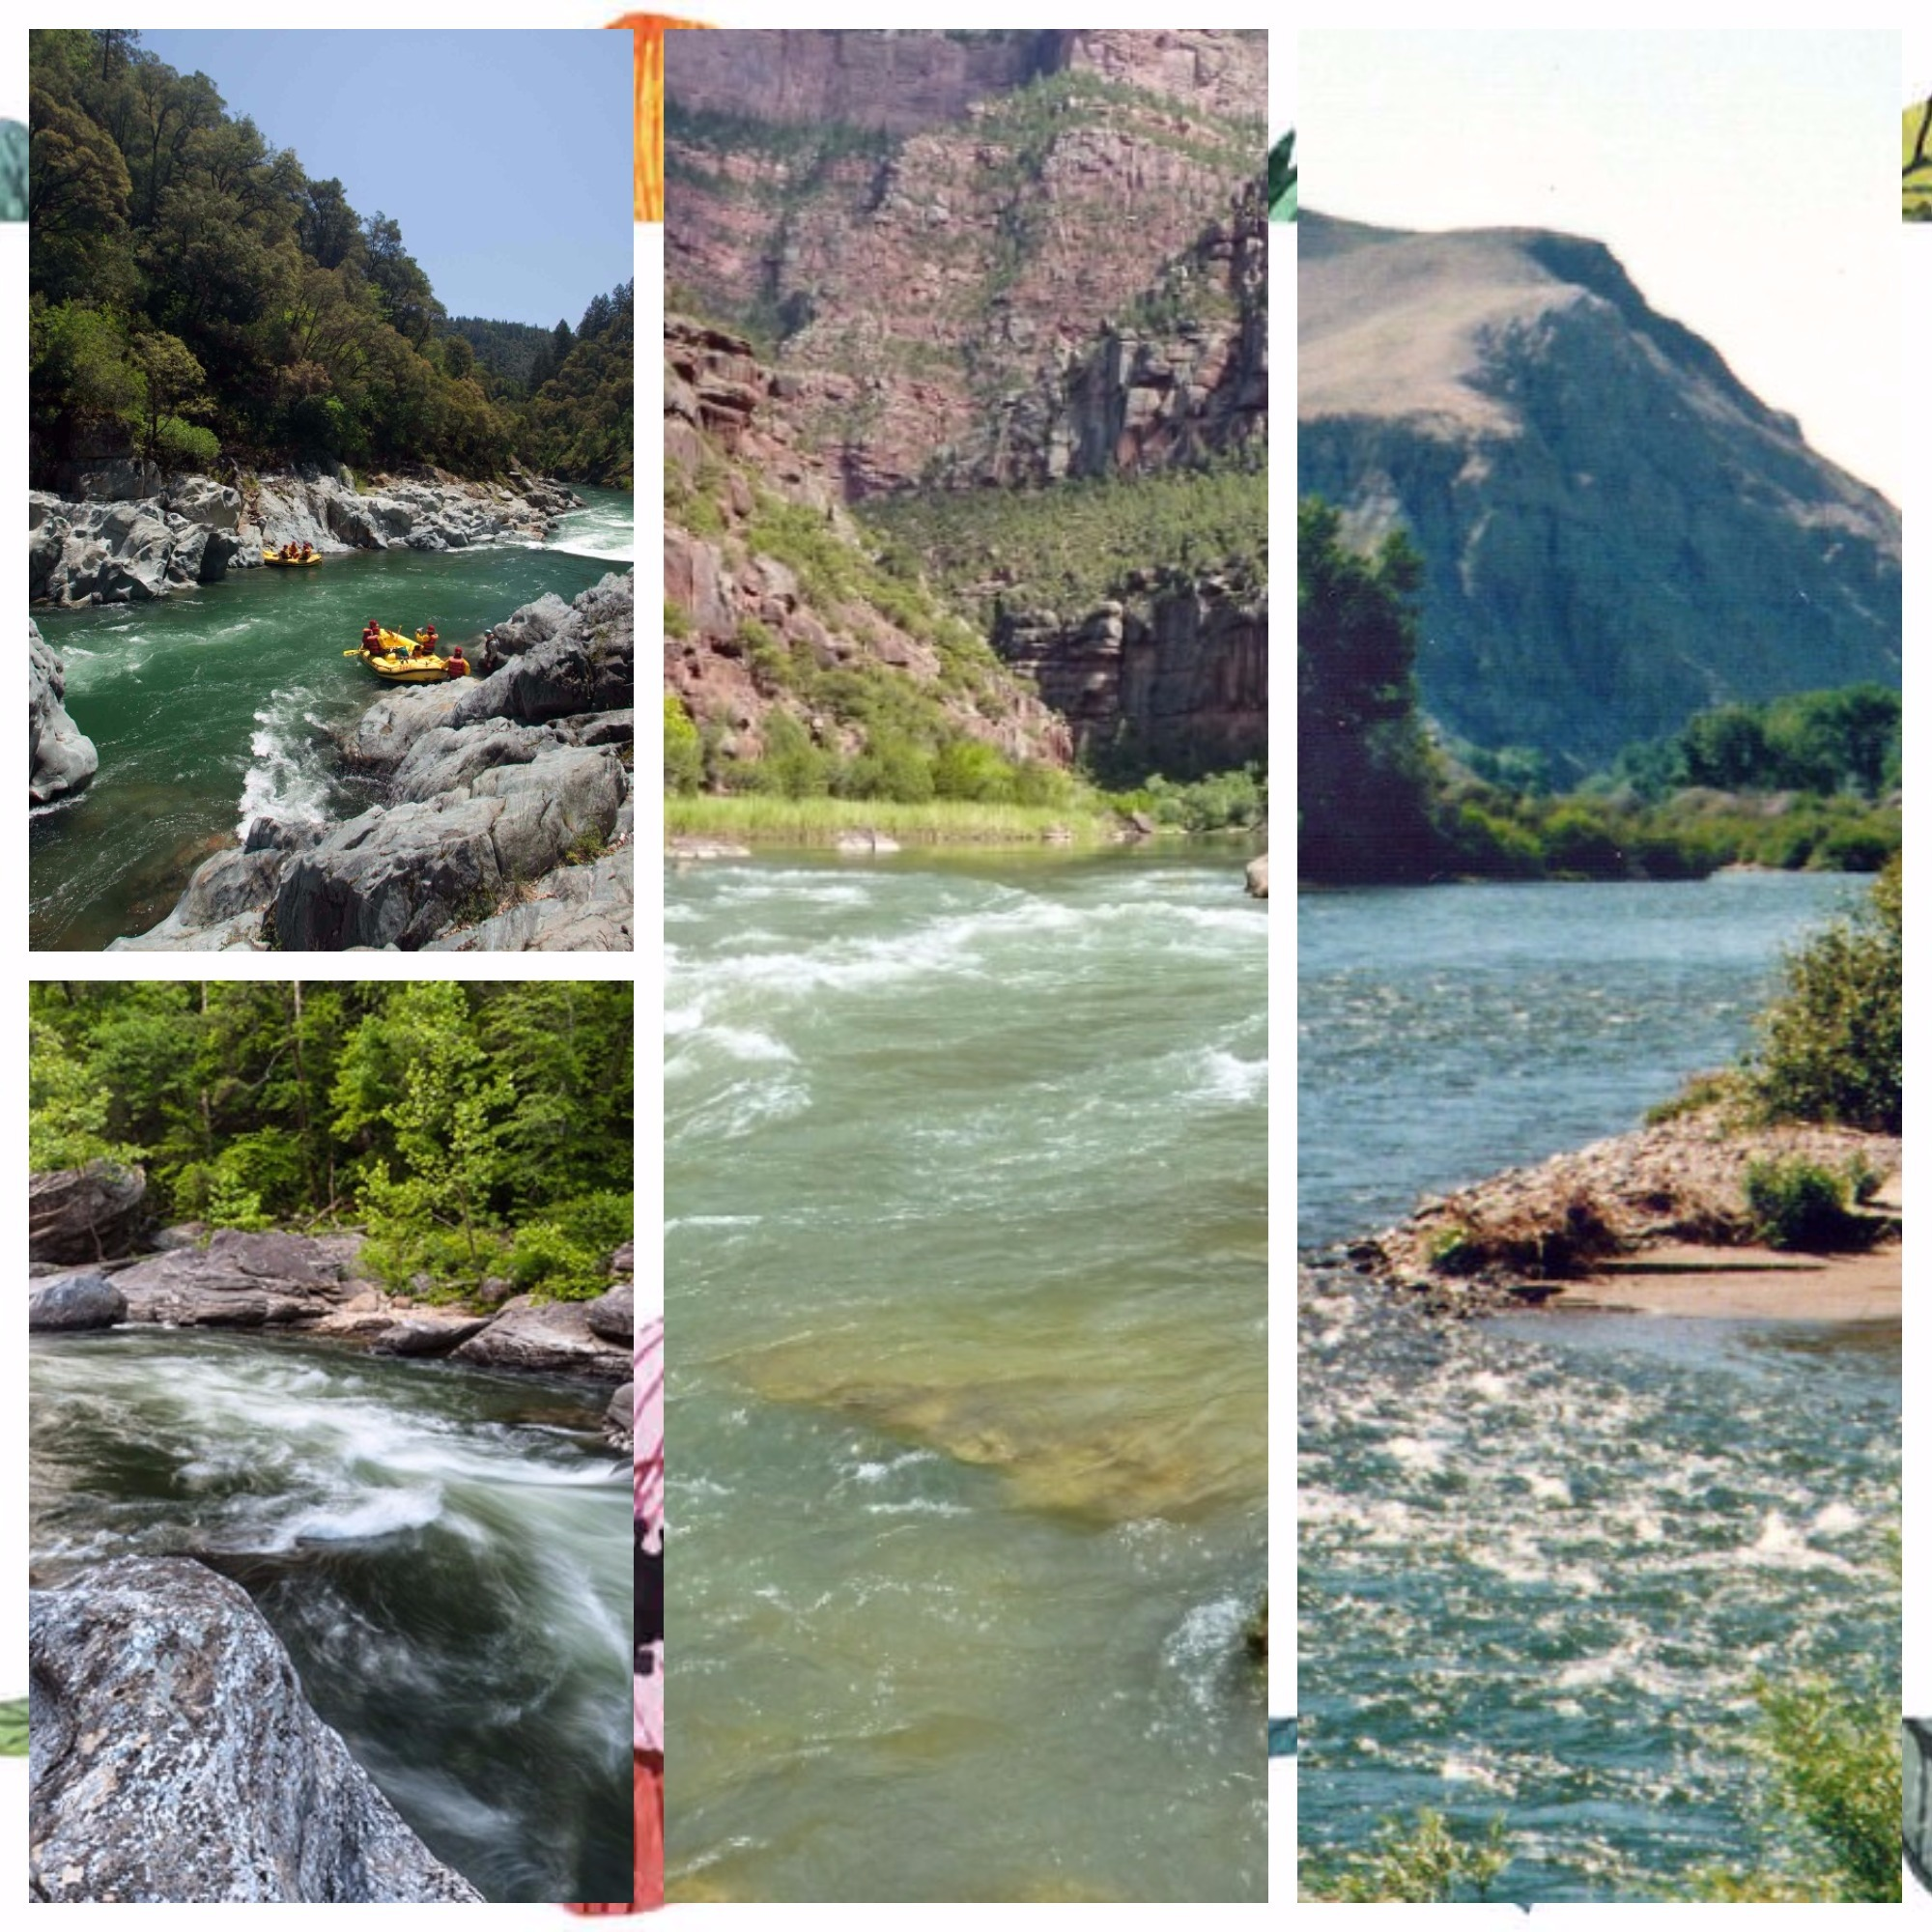 WHITE WATER RAFTING DESTINATIONS IN THE US